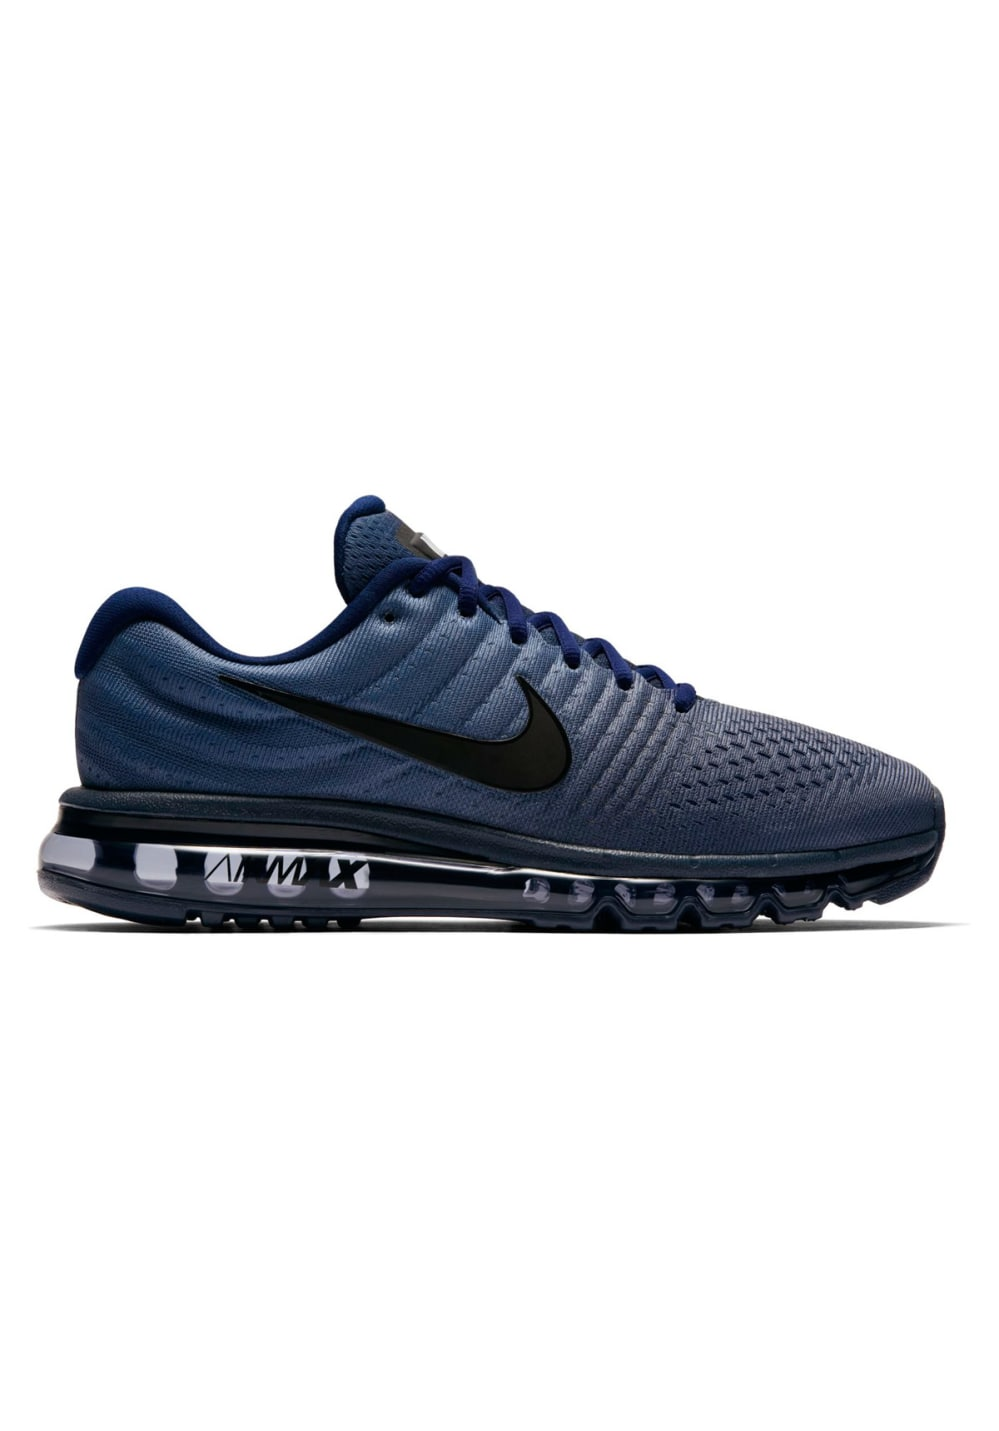 Nike Air Max 2017 Running shoes for Men Blue